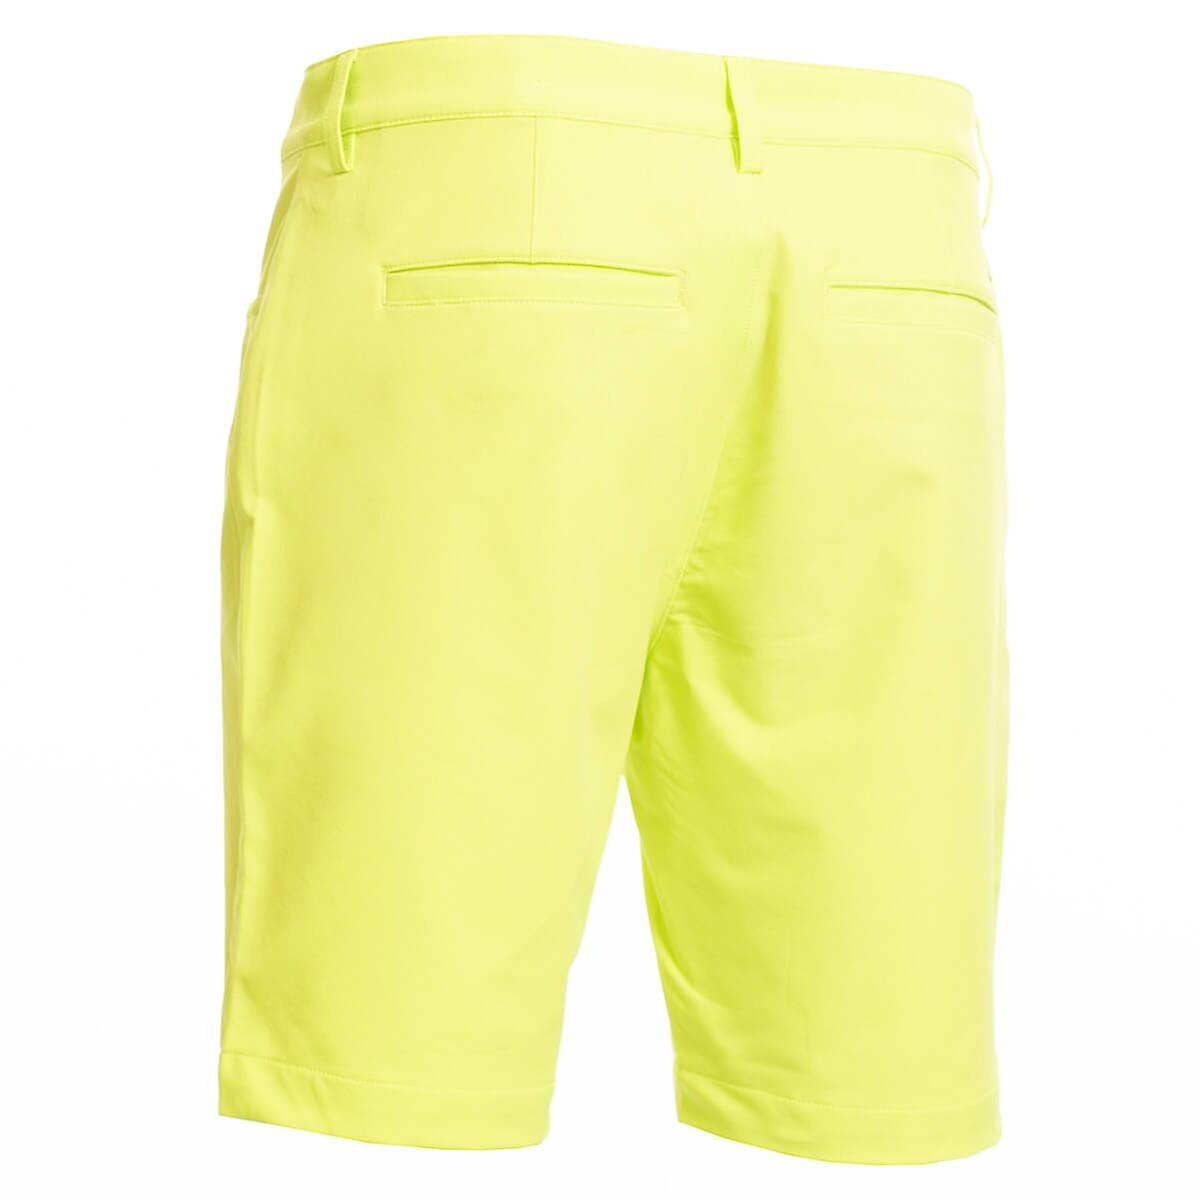 Calvin Klein Herren Genius 4-Way Stretch Shorts CKMS19214 lime